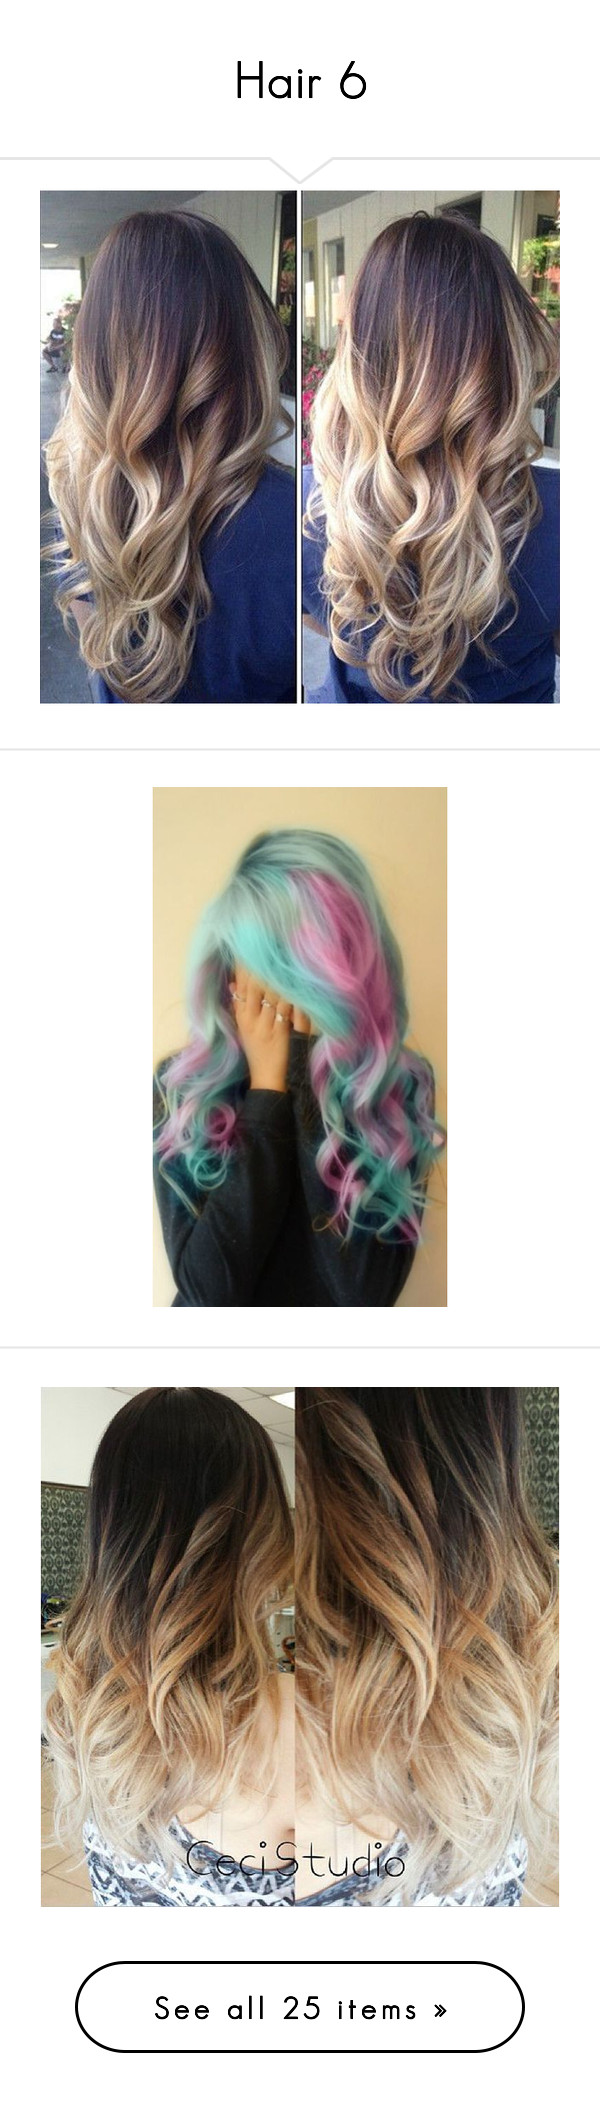 """""""Hair 6"""" by mel-grey-lannister ❤ liked on Polyvore featuring beauty products, haircare, hair color, hair, beauty, hairstyles, lullabies, pictures, cabelos and pink hair"""